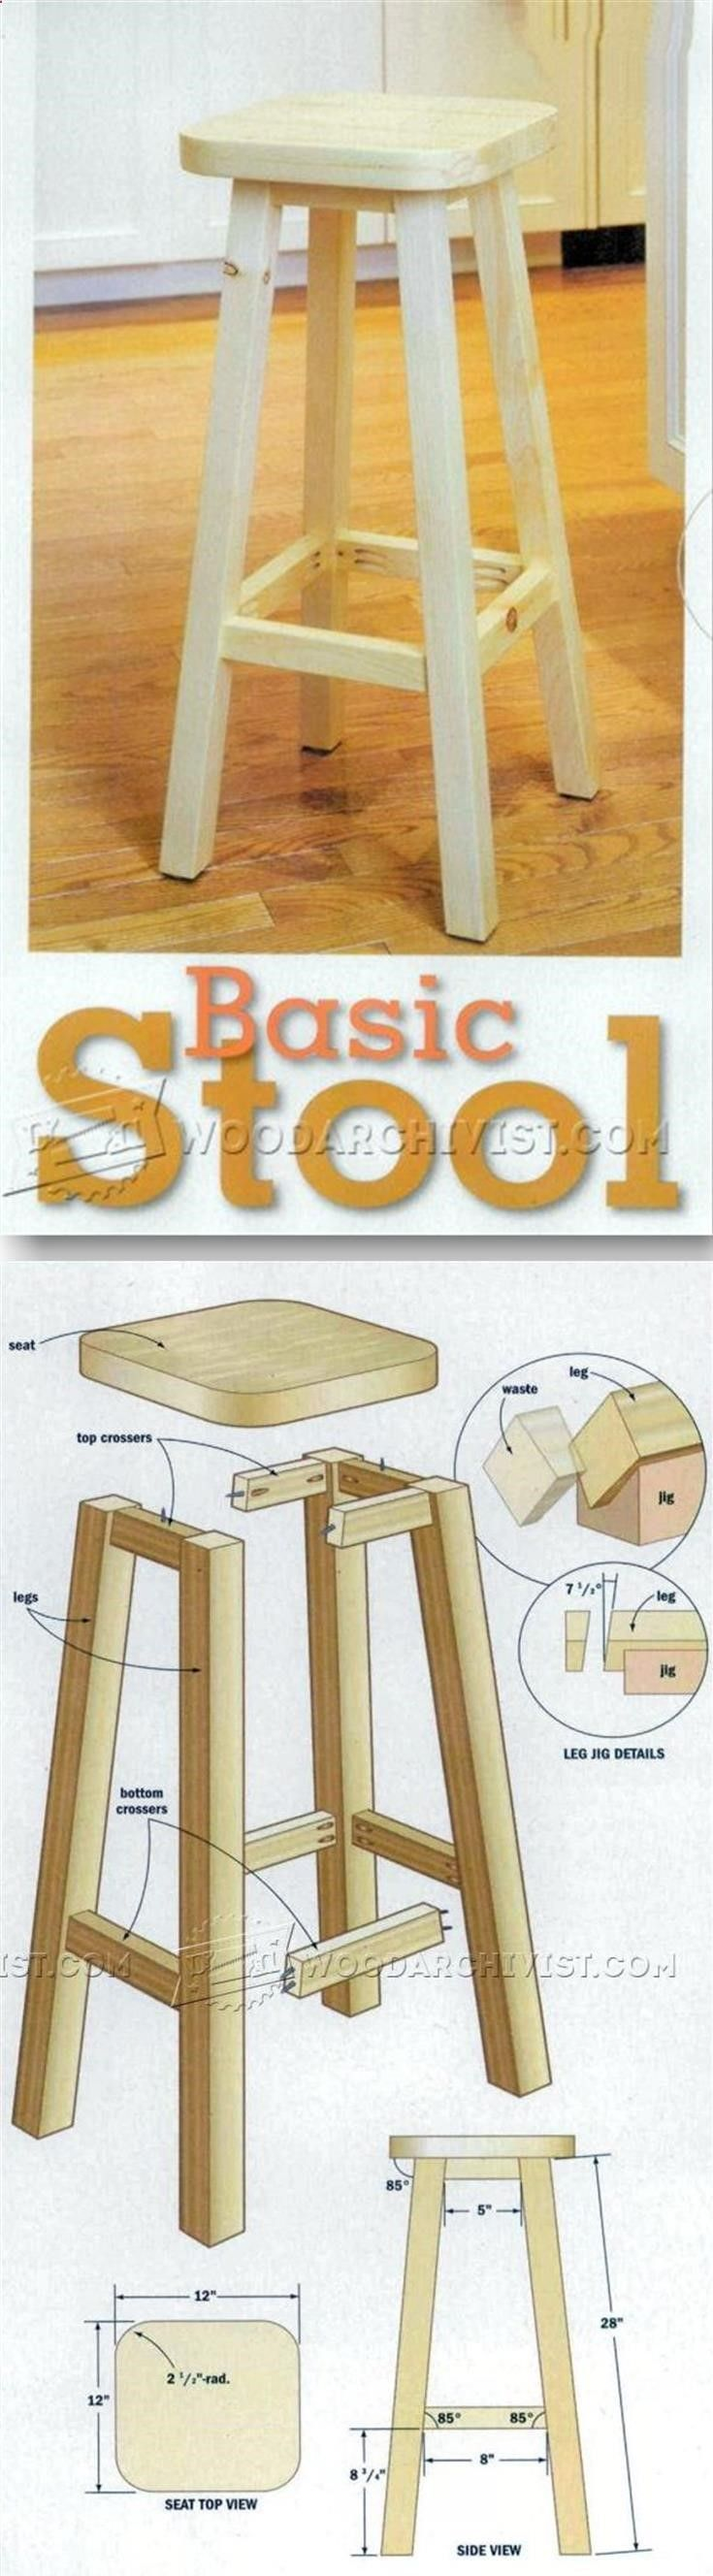 Kitchen Stool Plans - Furniture Plans and Projects   WoodArchivist.com